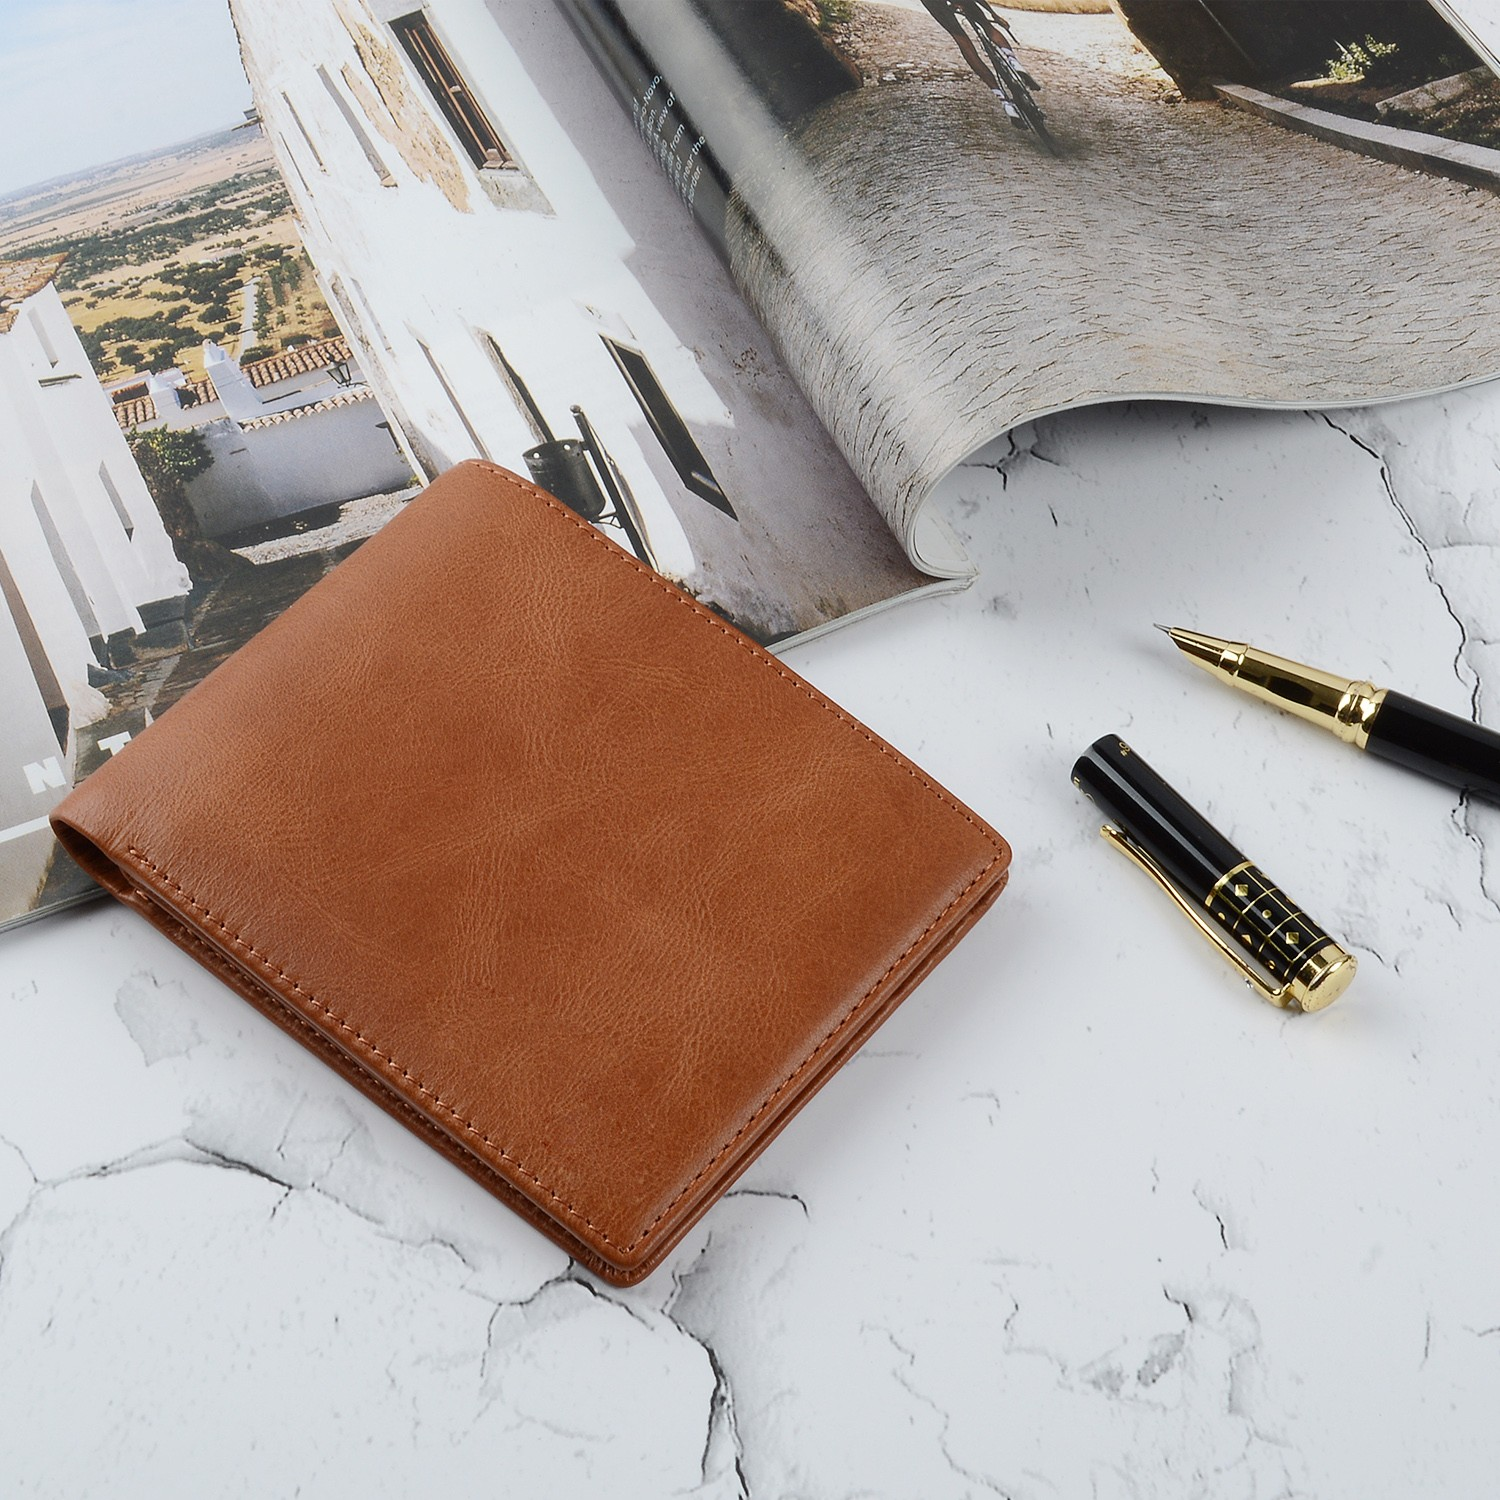 leather travel wallet large capacity for men-5